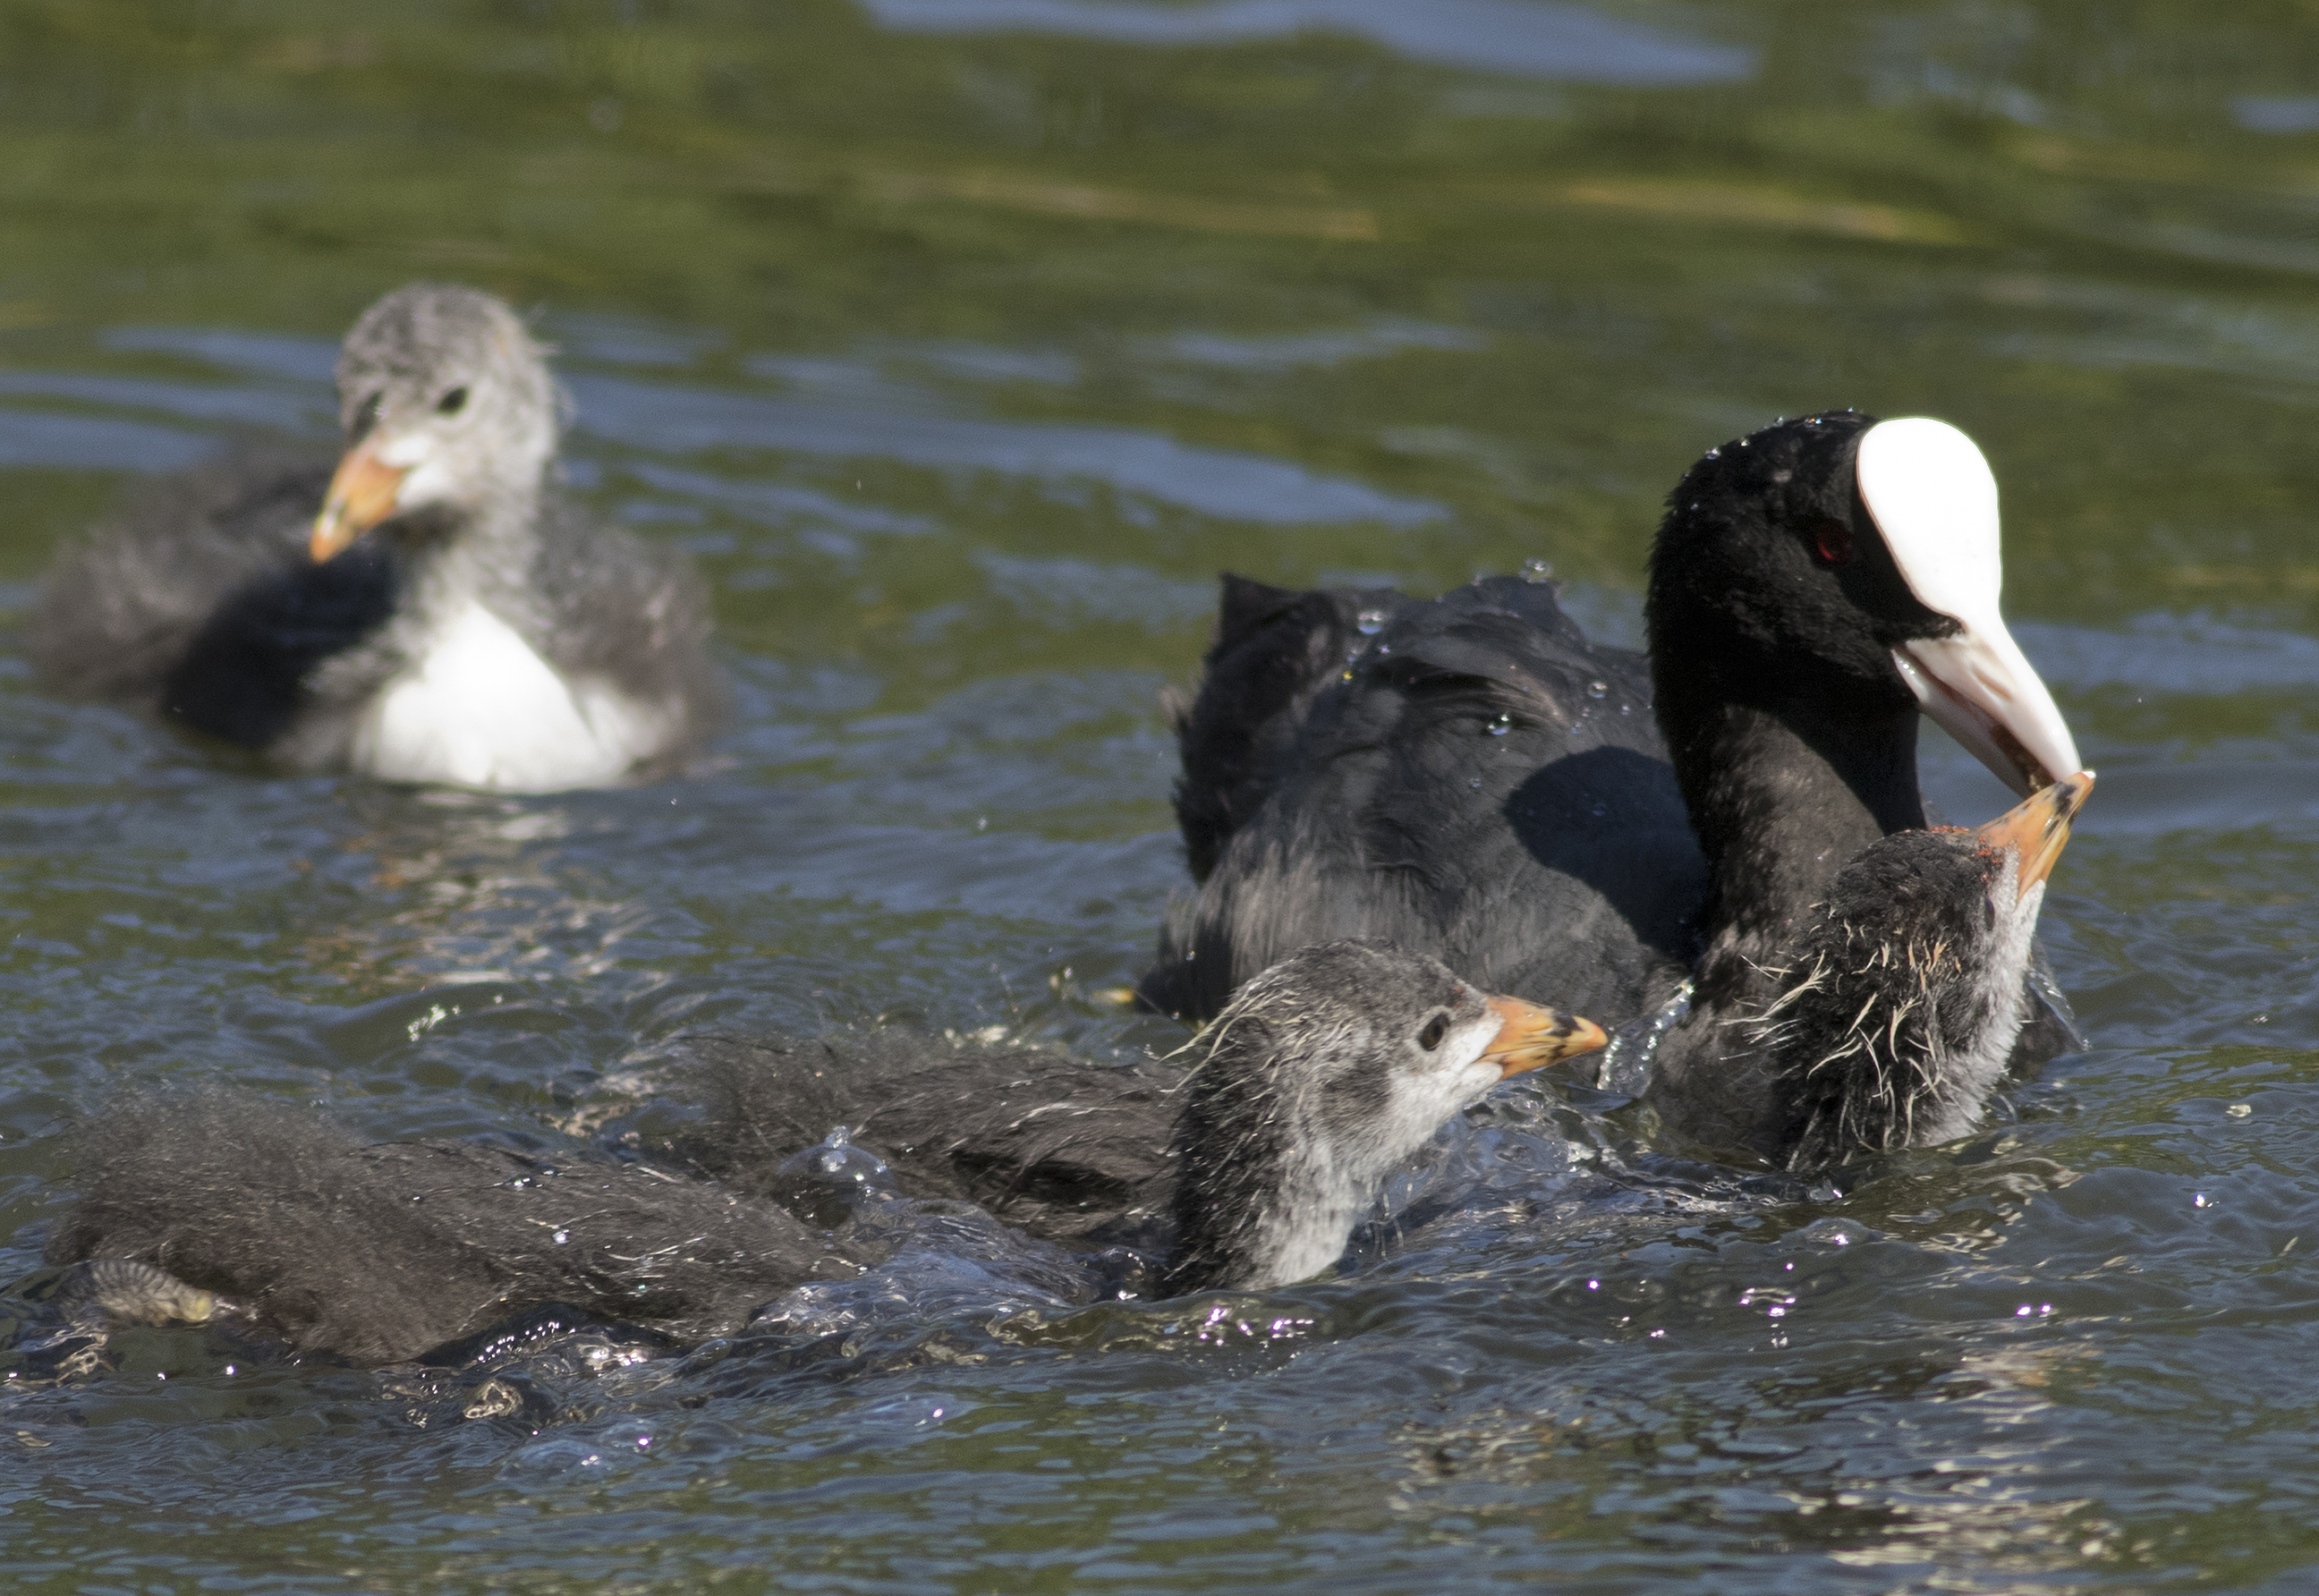 More coots and cootlets